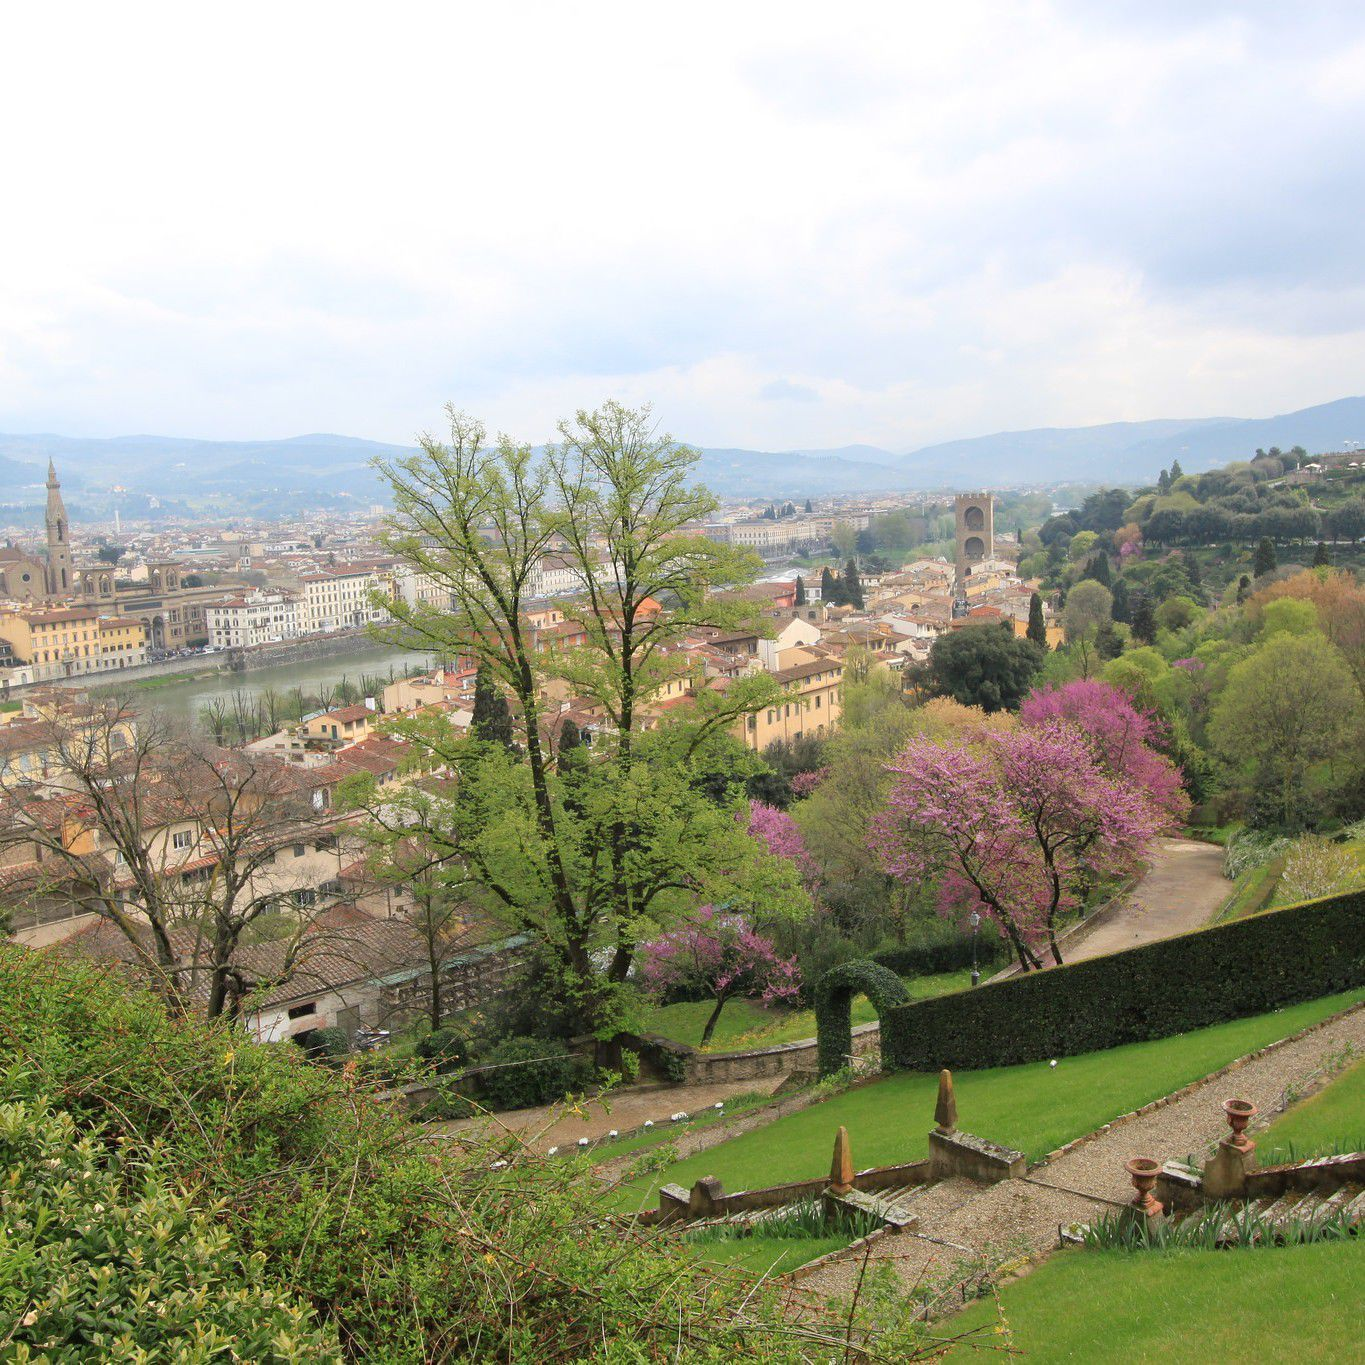 Views of the Giardino Bardini by Bradley Griffin CC BY 2.0